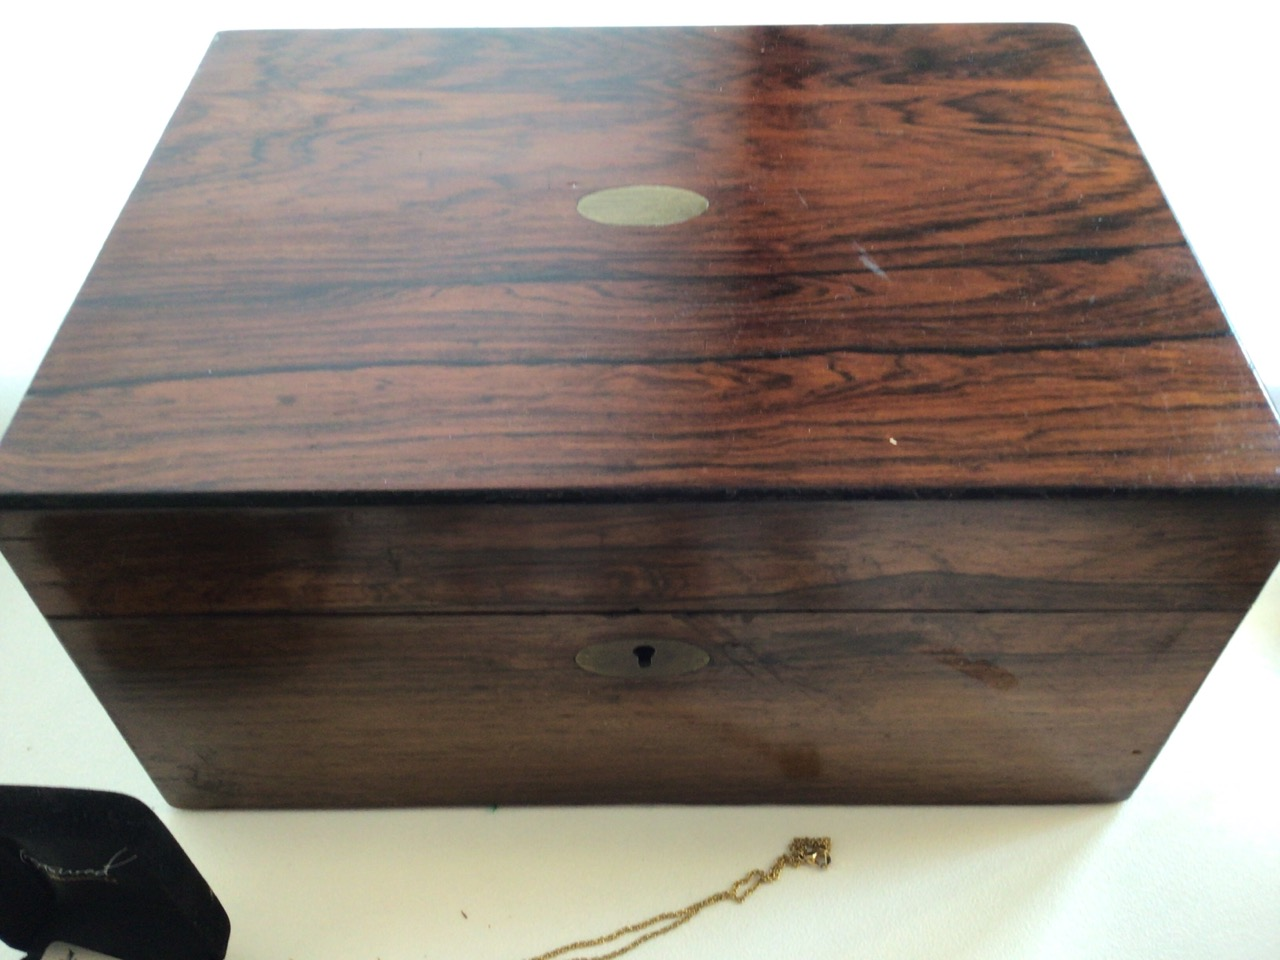 A Victorian rosewood inlaid jewellery box also with unmarked jewellery, pocket watches and silver - Image 2 of 4